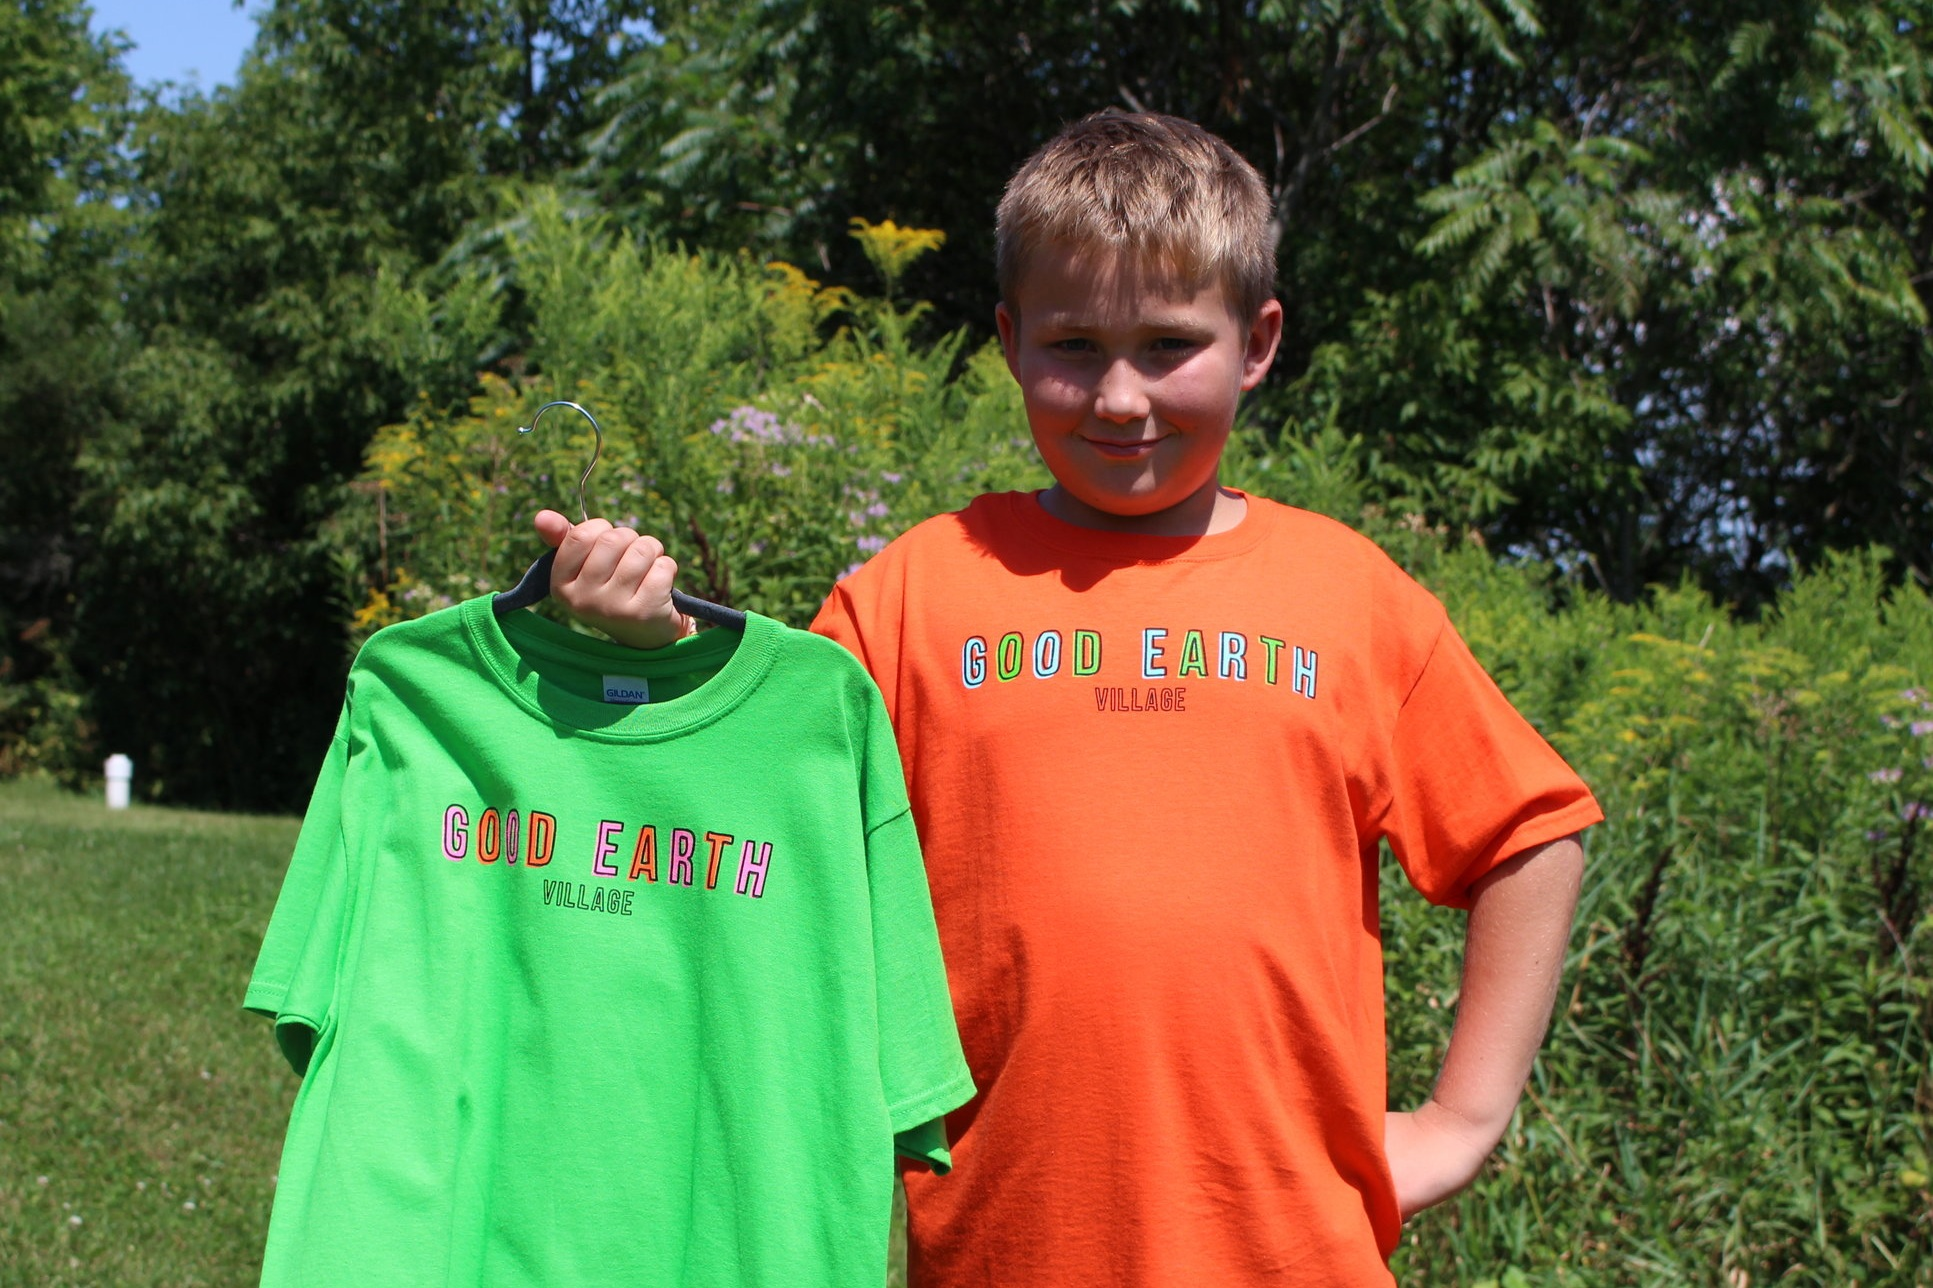 Item:  Thin Line T-Shirt  Colors:  Lime and Orange  Sizes:  Youth Small - Youth Large  Price:  $15